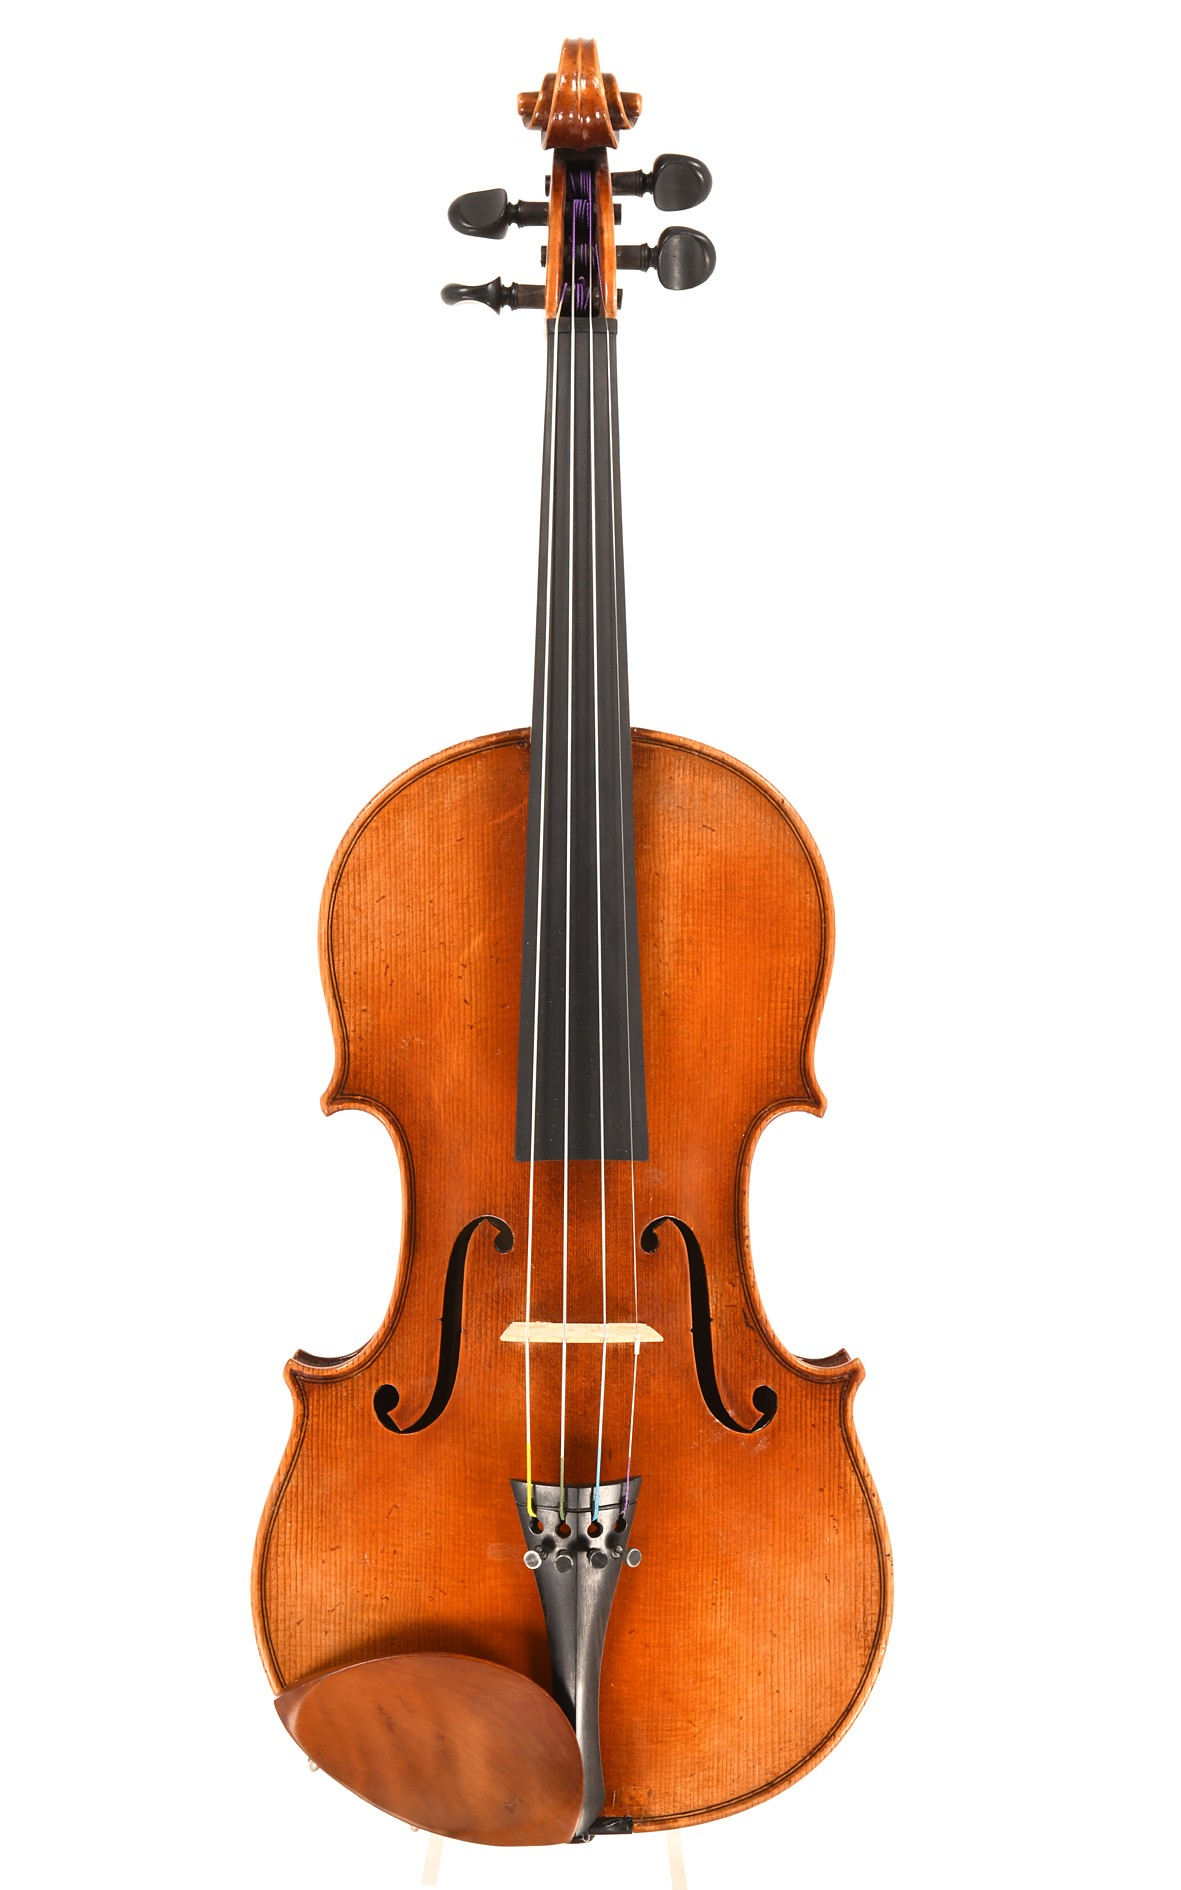 Paul Rammig, Markneukirchen violin made in 1938